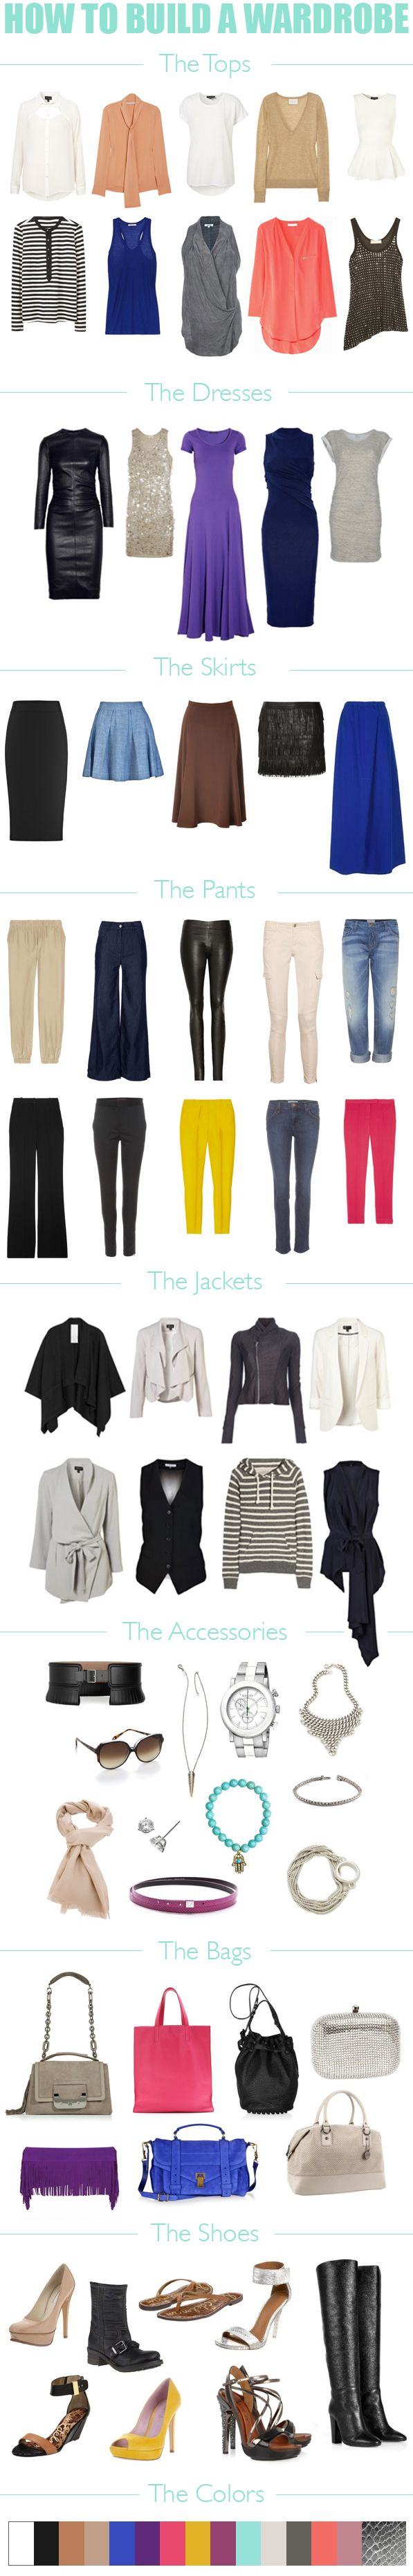 How To Build A Wardrobe - READ it!Outfit To Wear To Schools, Diy Beautiful Shops Lists, Basic Outfit Ideas, Buildings A Wardrobes, Schools Outfit Diy, Basic Outfit For Schools, Colleges Clothing Lists, Colleges Fashion Basic, Dreams Closets